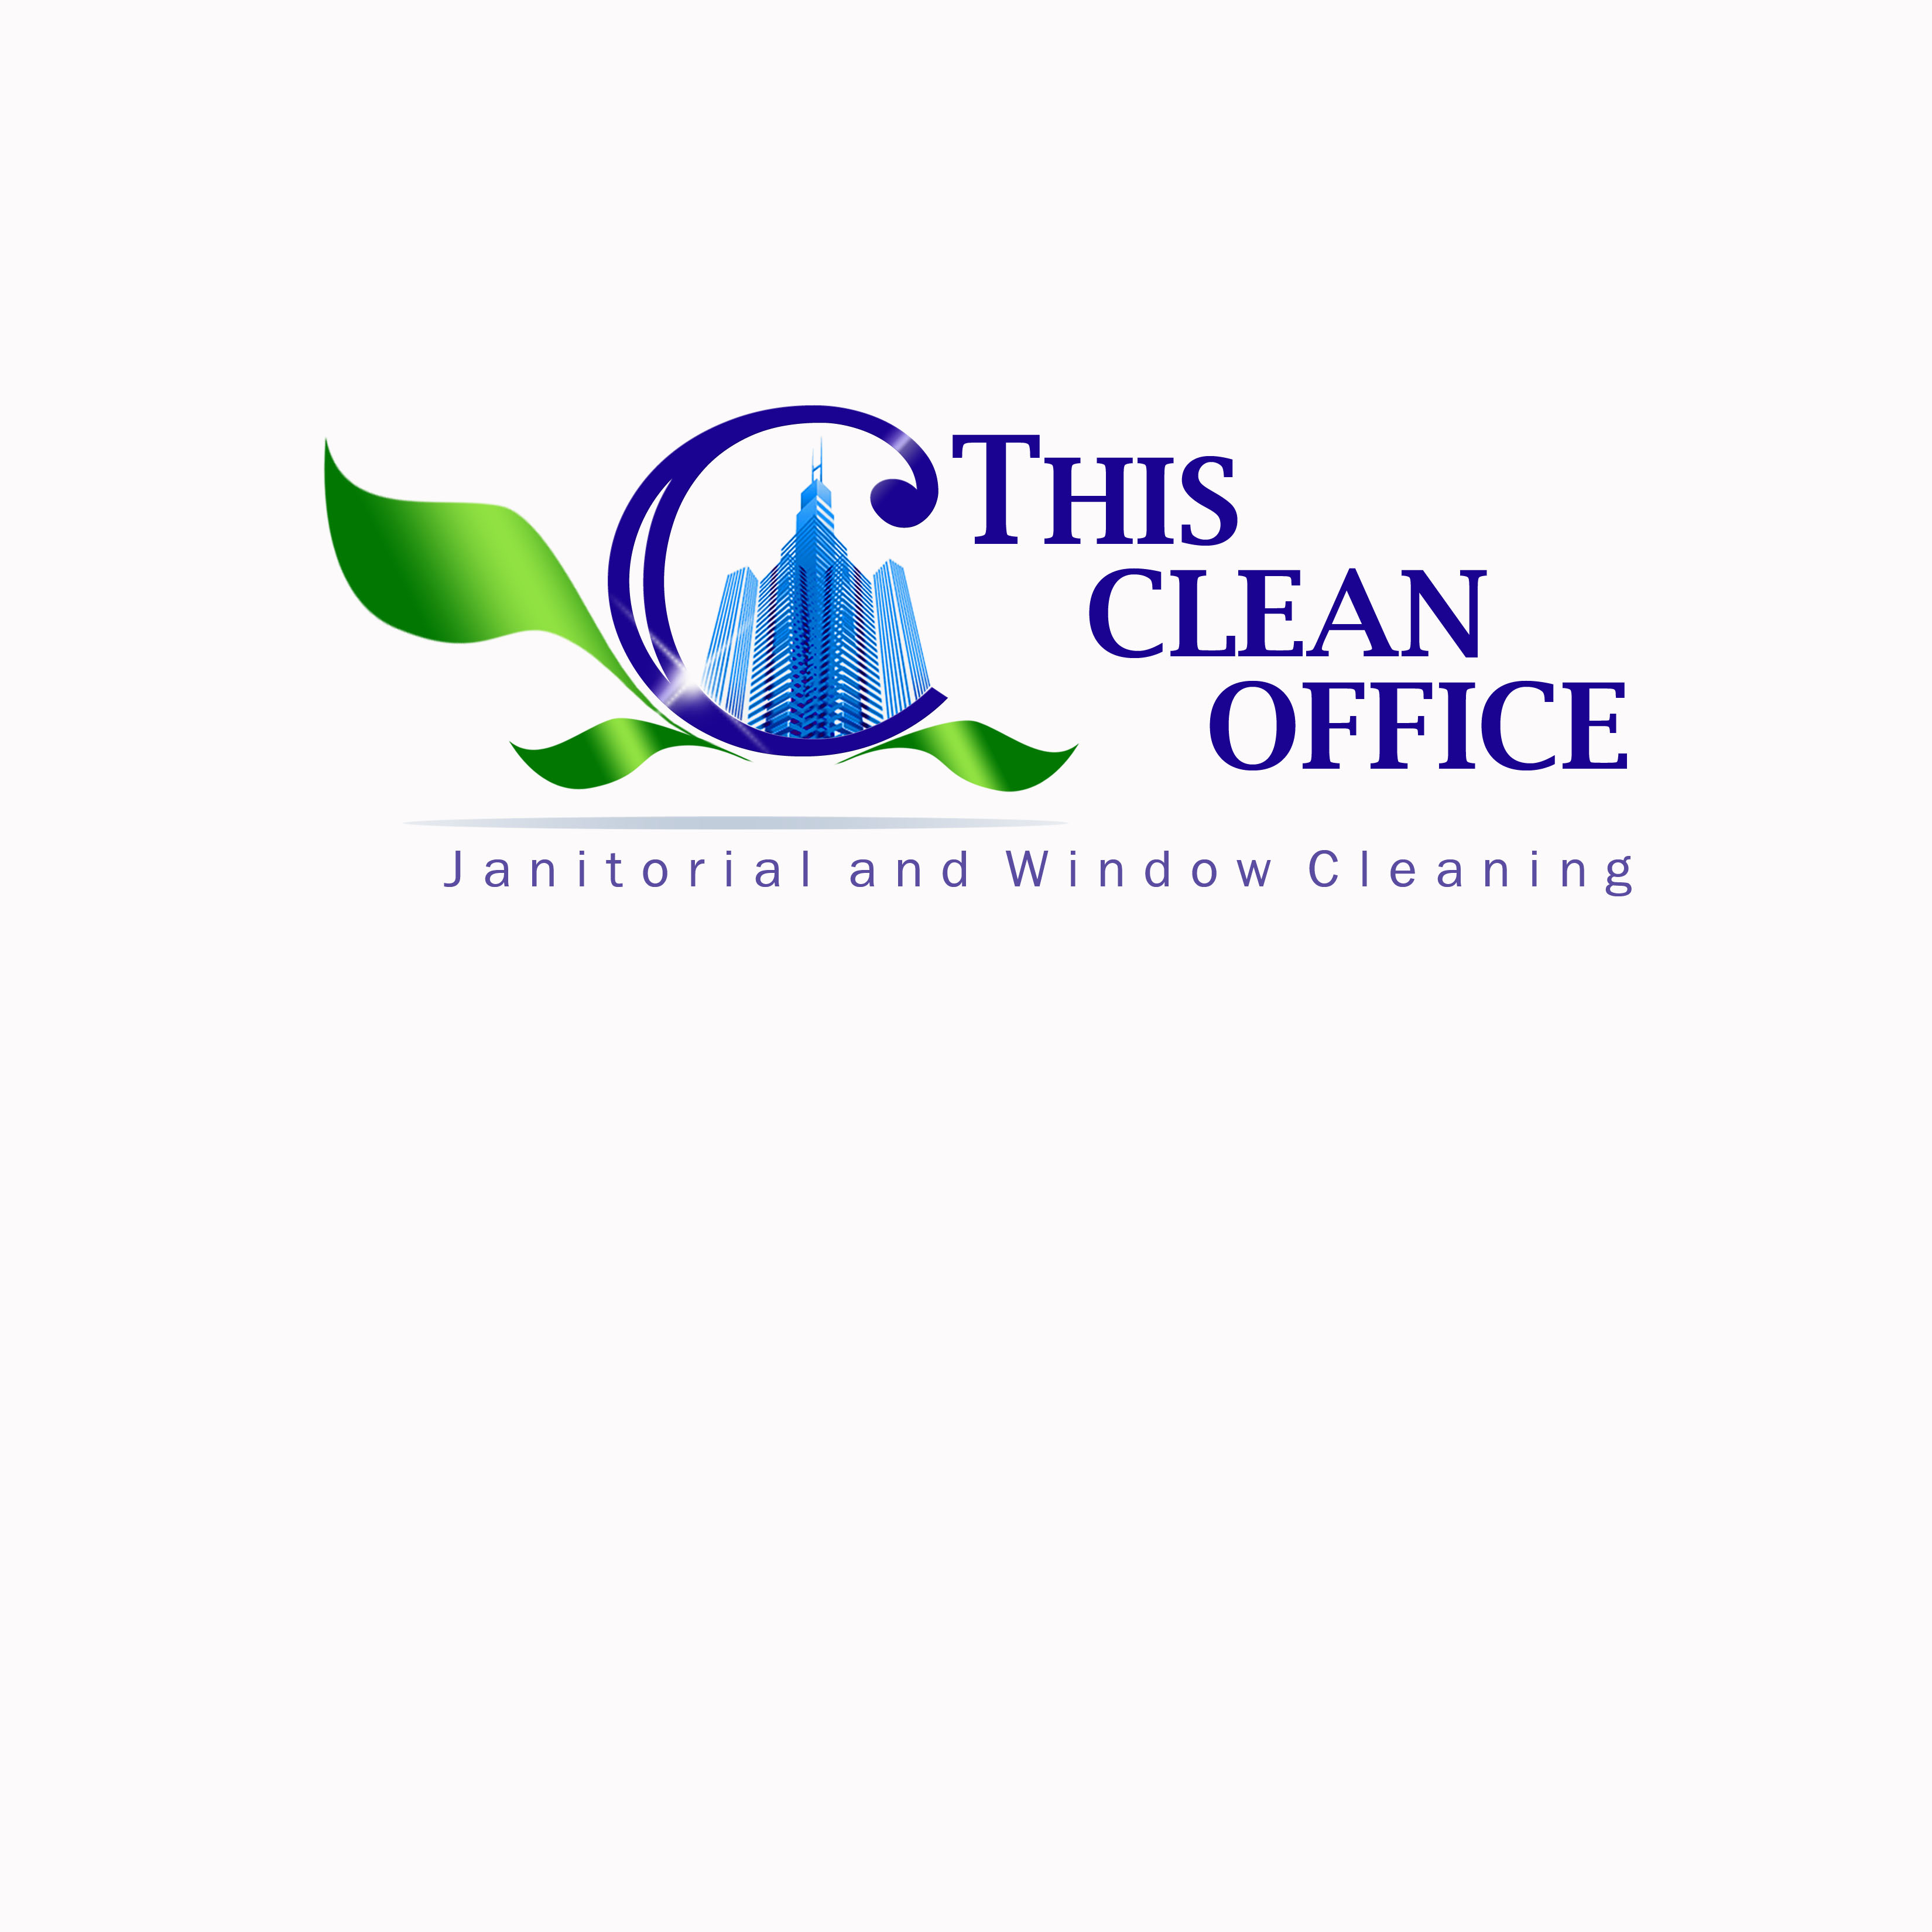 Logo Design by Allan Esclamado - Entry No. 79 in the Logo Design Contest Professional and Unforgettable Logo Design for This Clean Office.